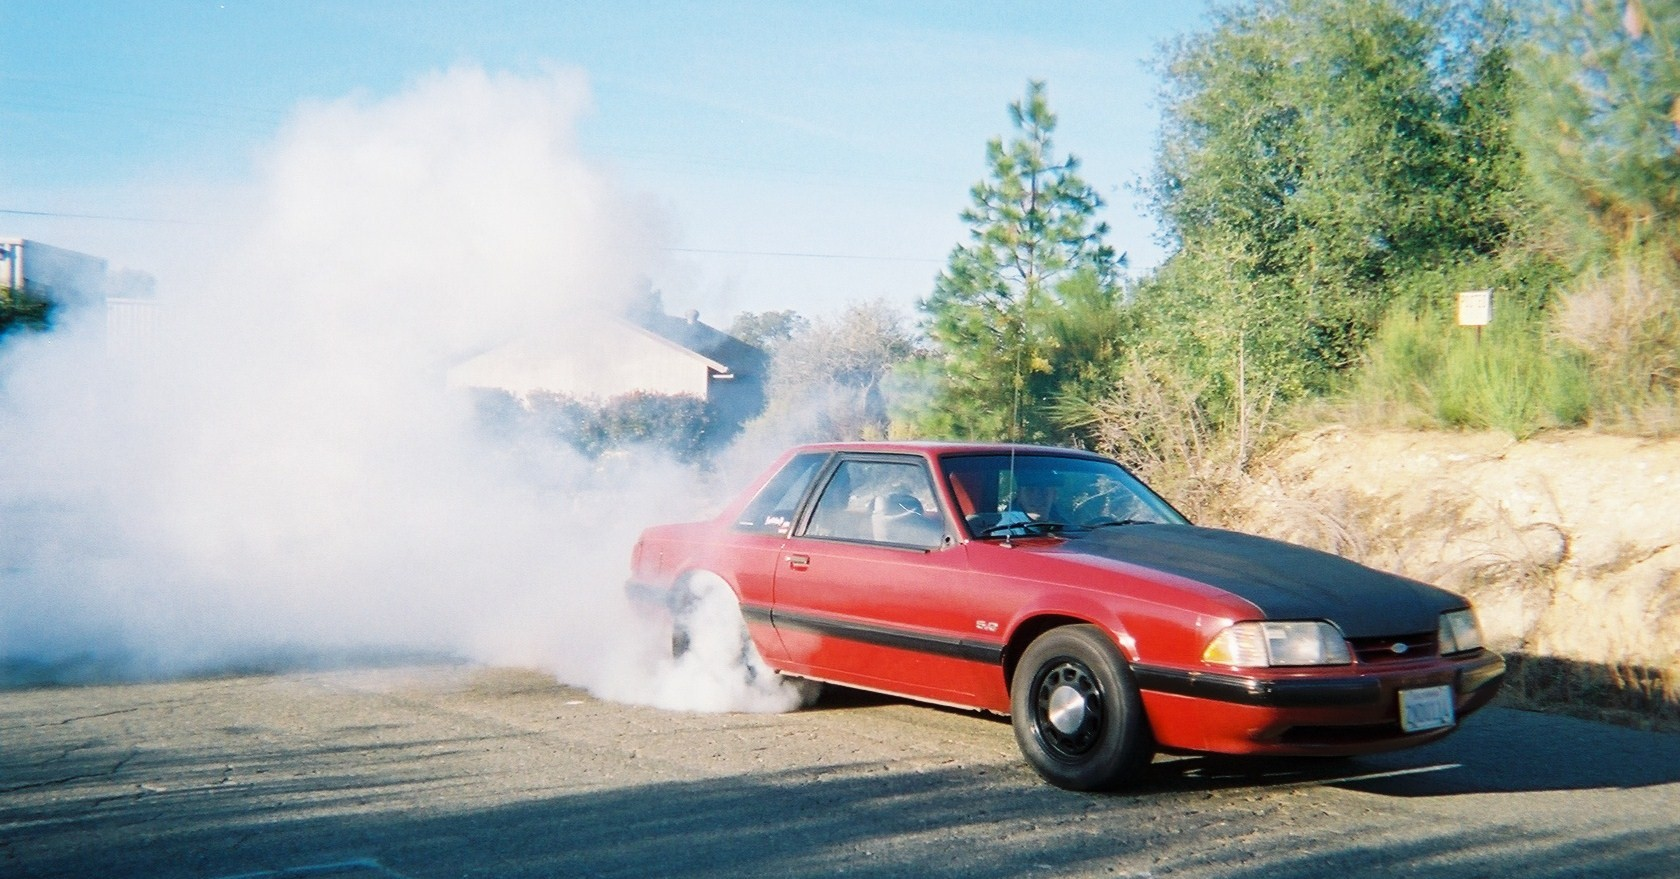 1989 Ford Mustang lx notch